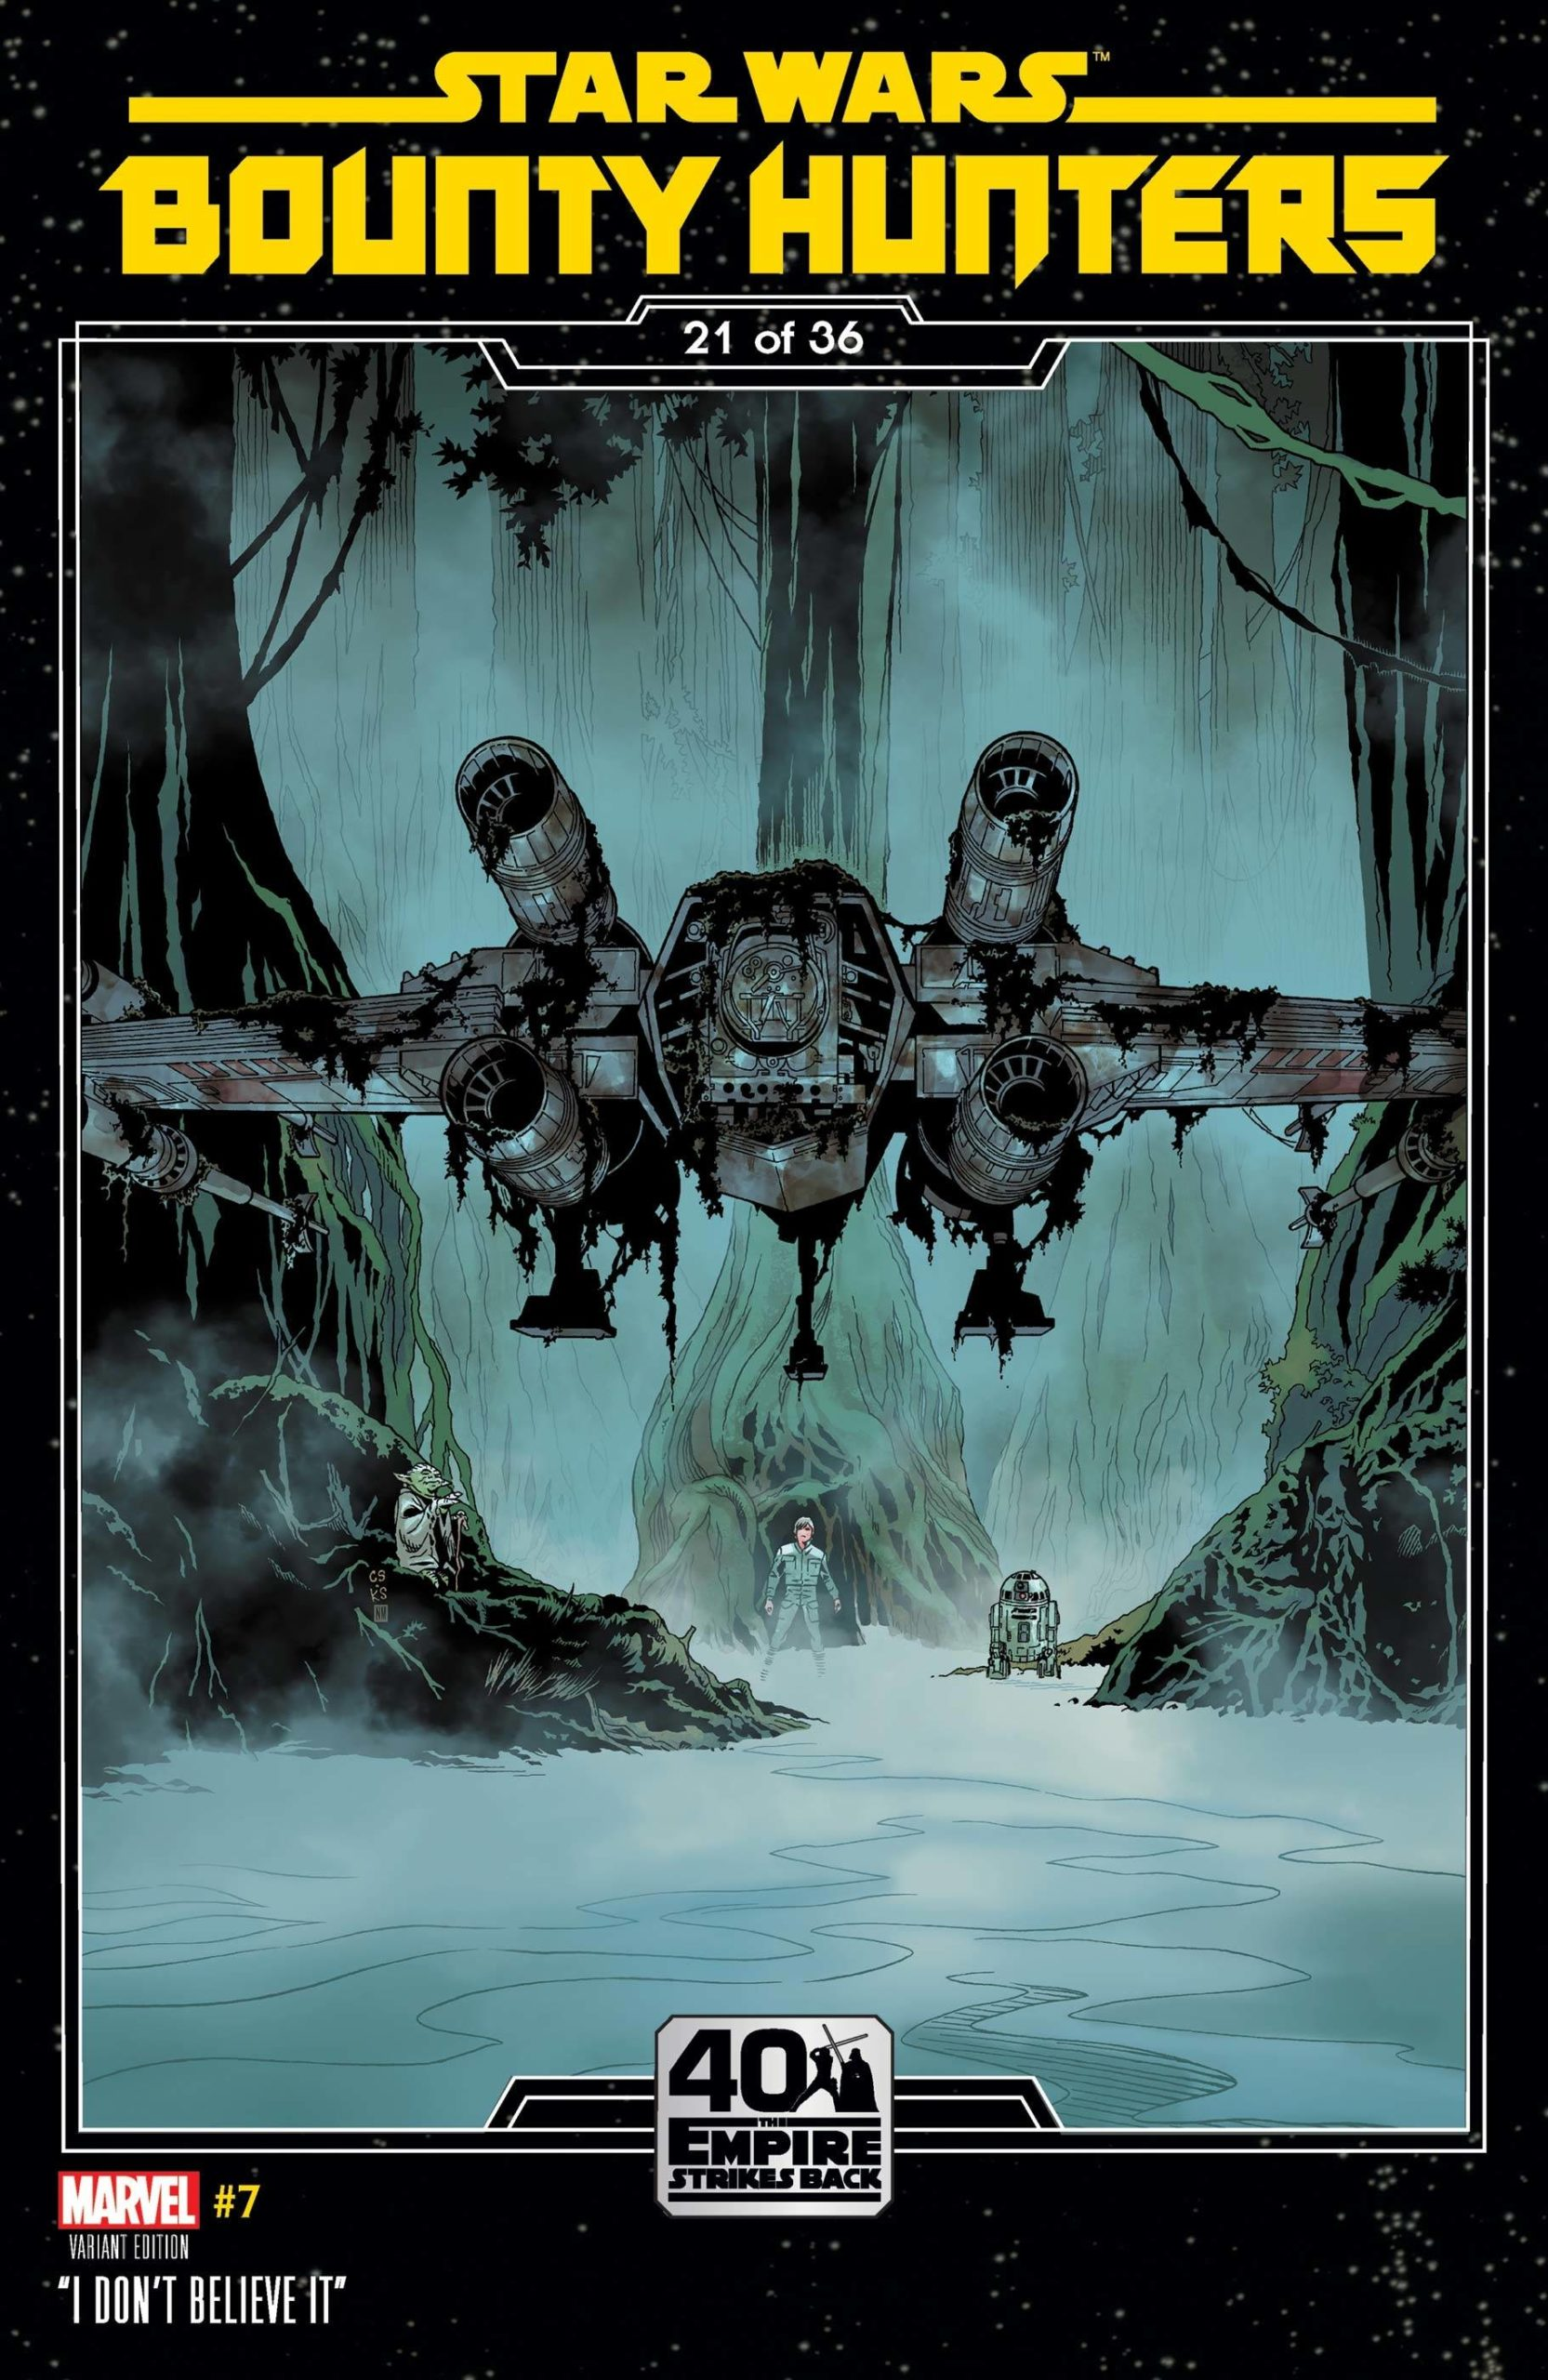 Bounty Hunters #7 (Chris Sprouse The Empire Strikes Back Variant Cover) (18.11.2020)